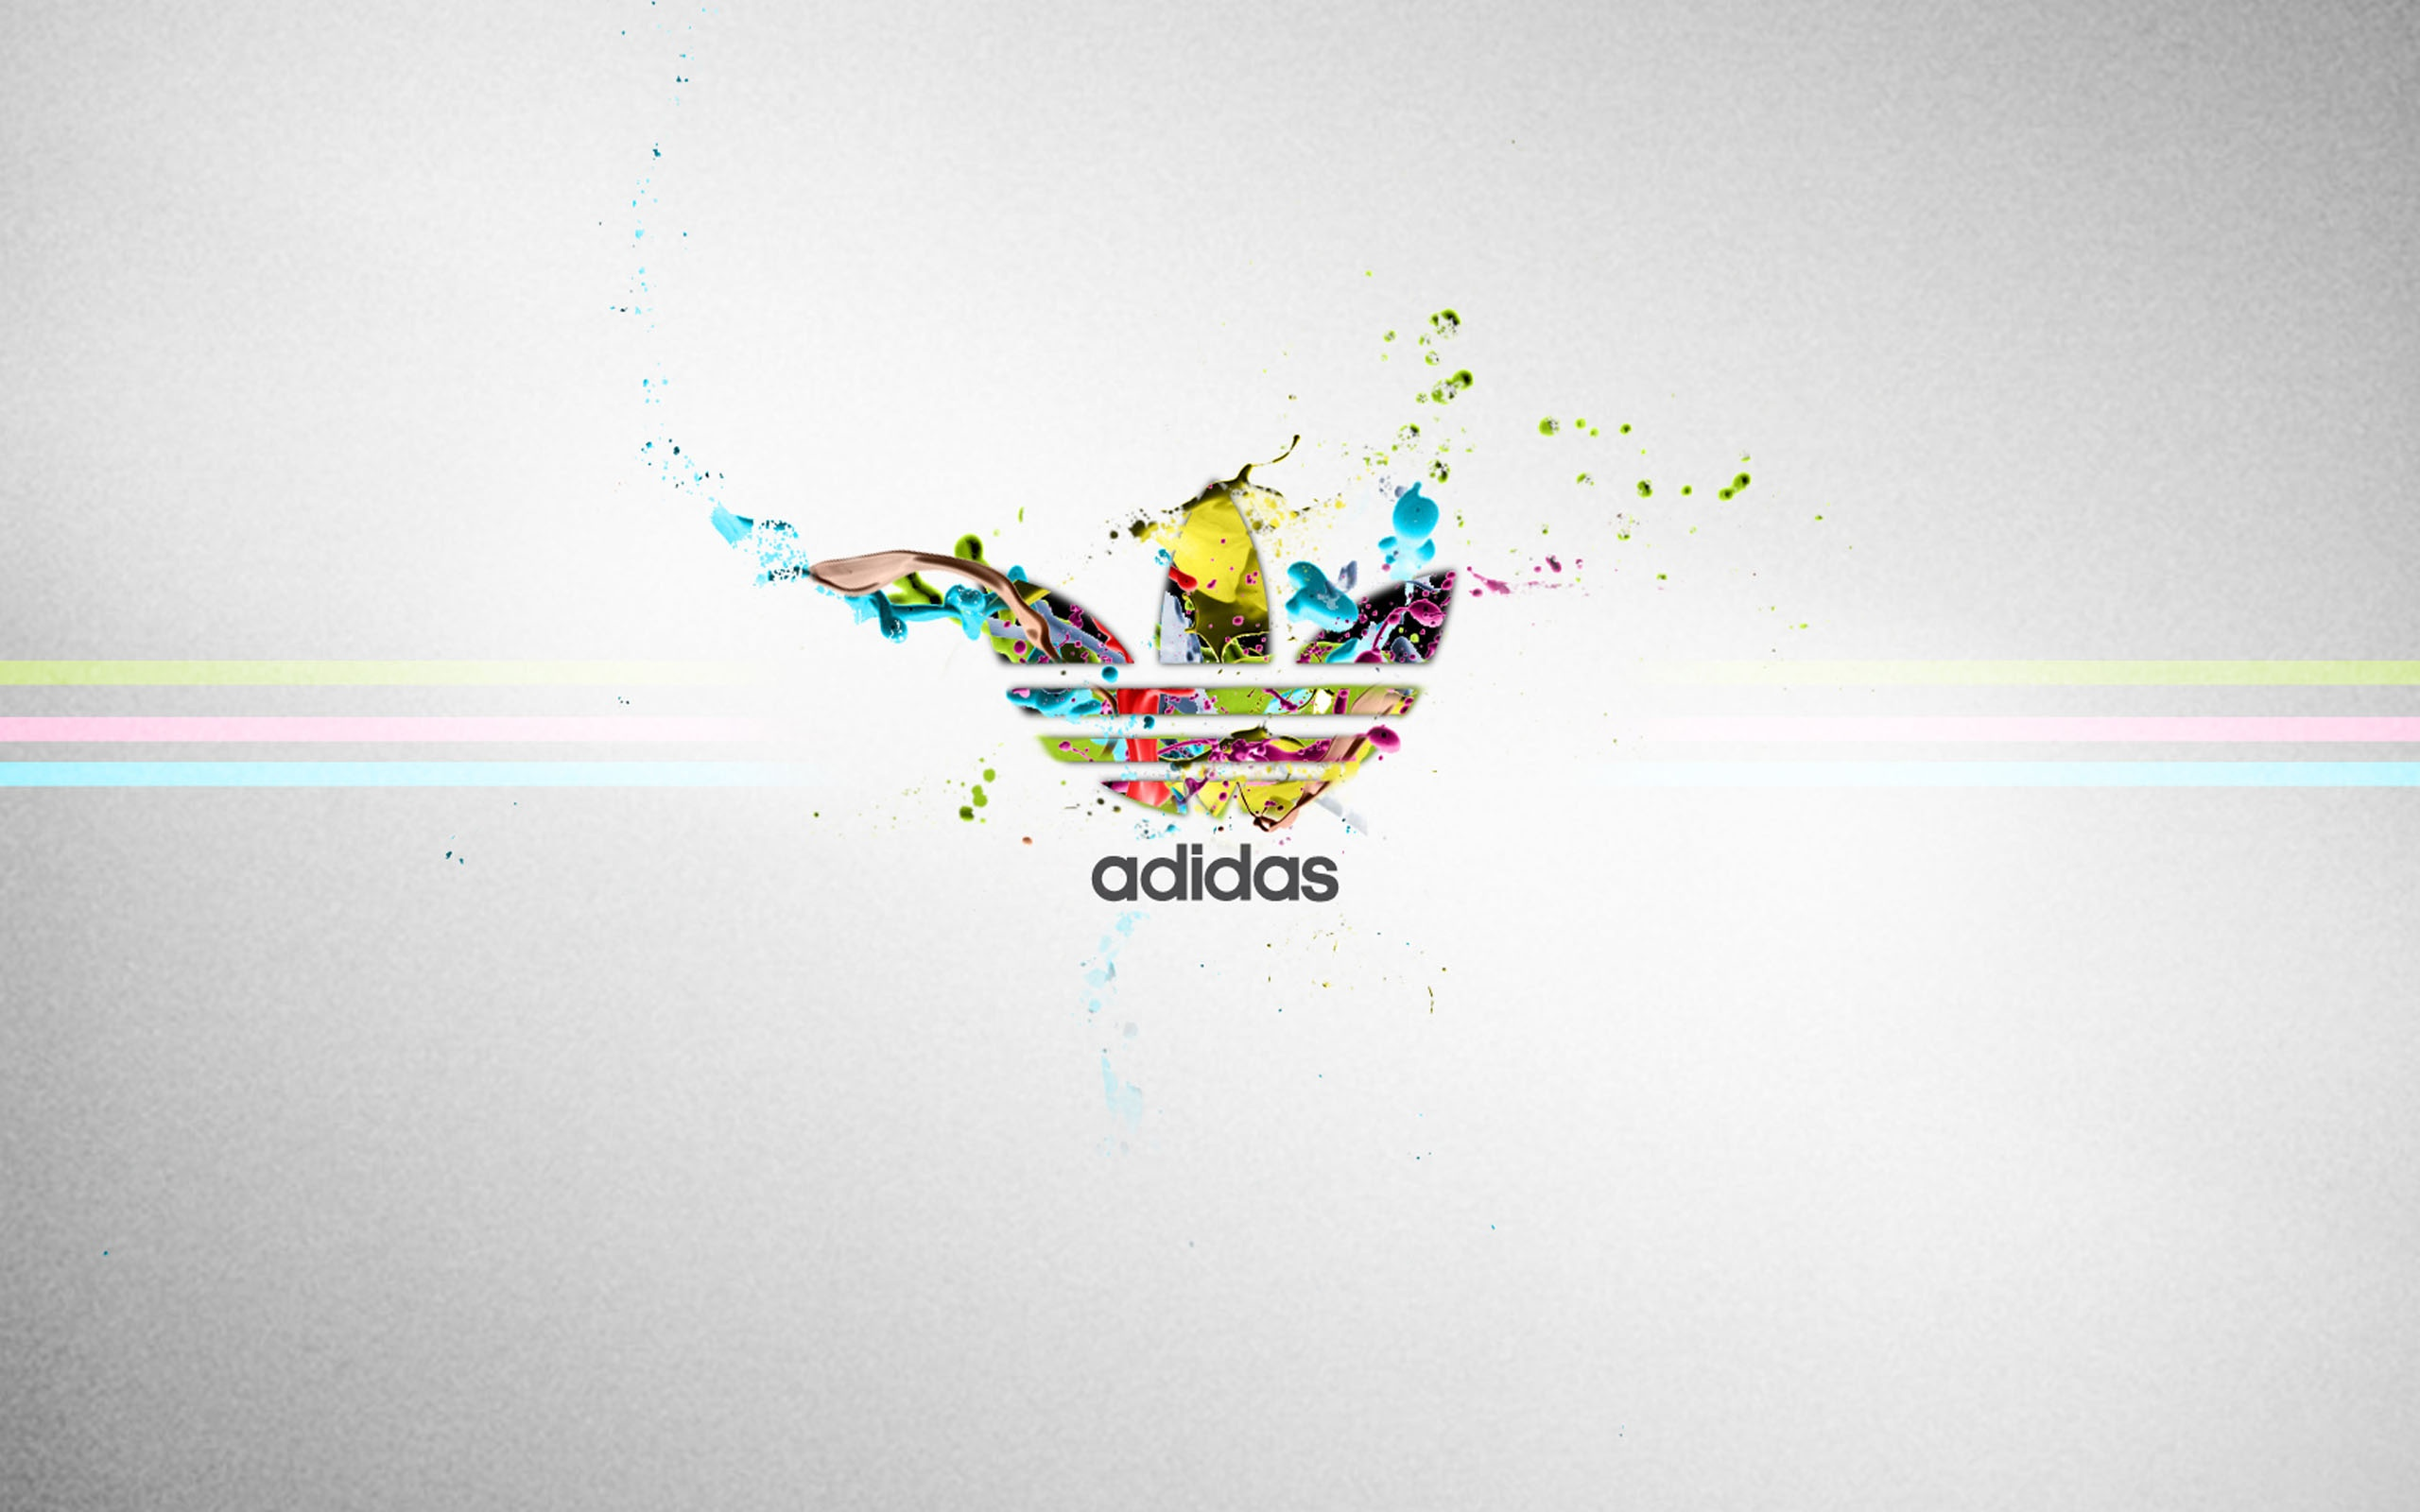 Adidas New Arrival Shoes Hd Wallpapers Widescreen Xpx